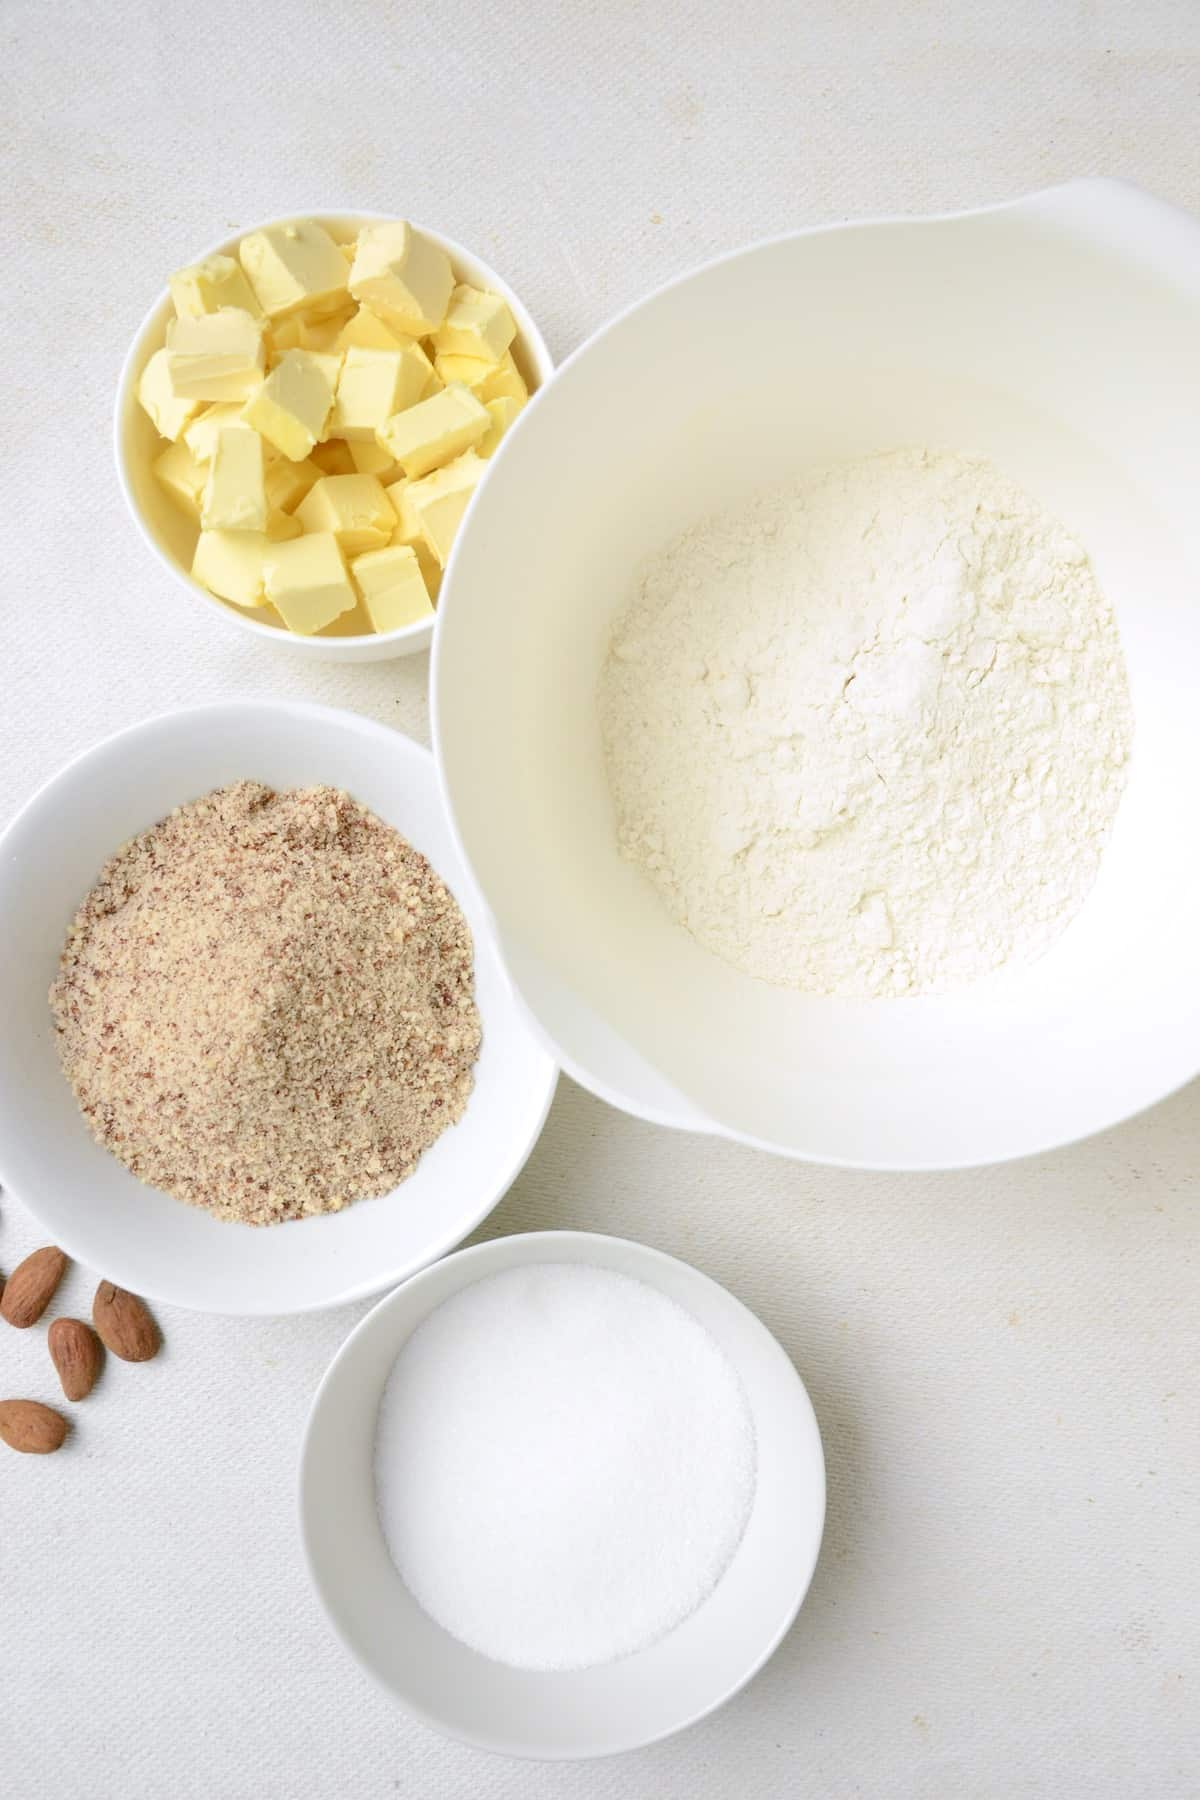 Dough ingredients for the vanilla crescent cookies: all-purpose flour, vegan butter cut into cubes, ground almonds, granulated sugar.